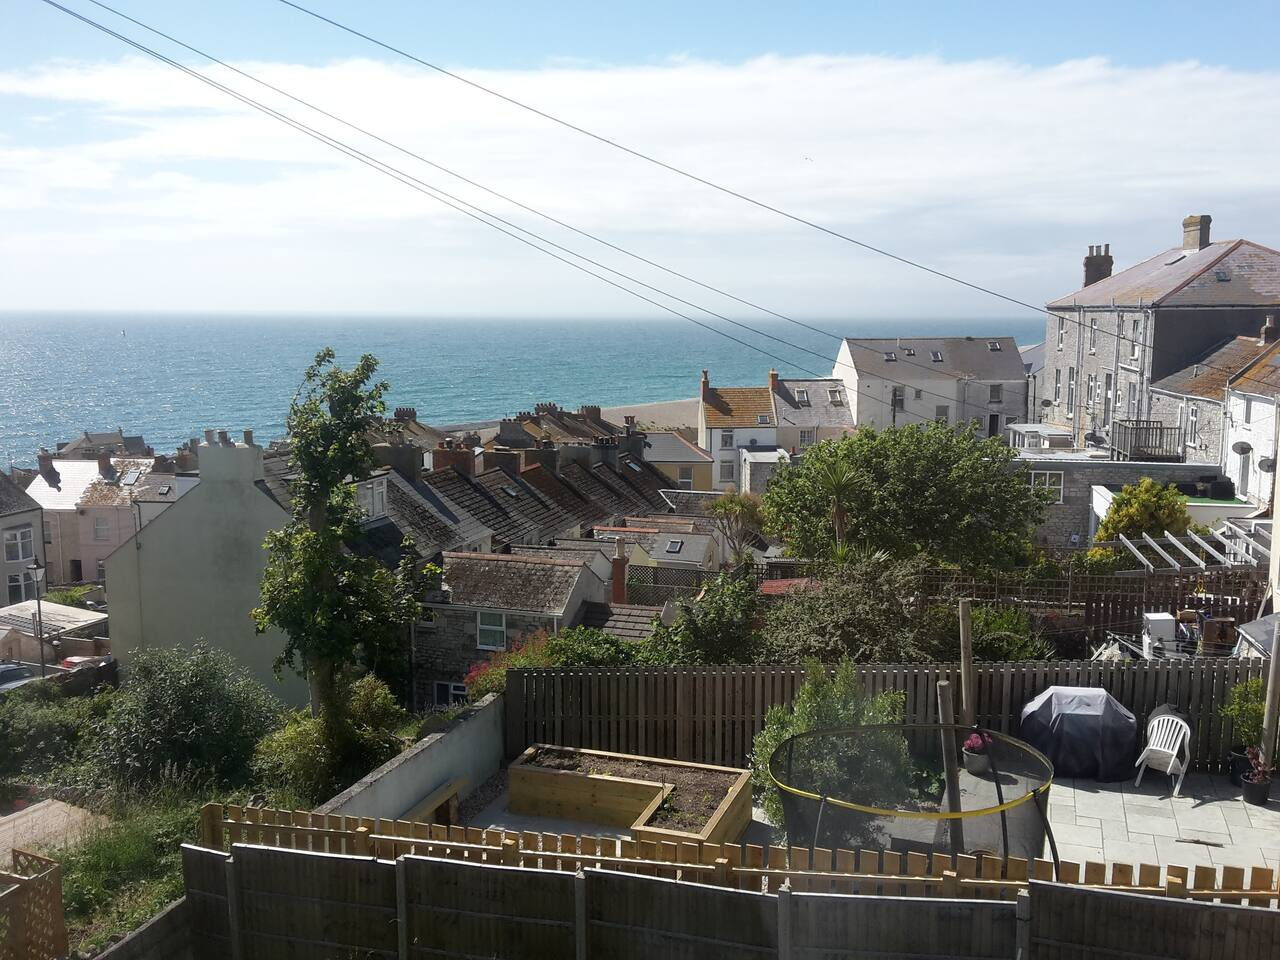 Beautiful Chesil Beach View from the bedroom window